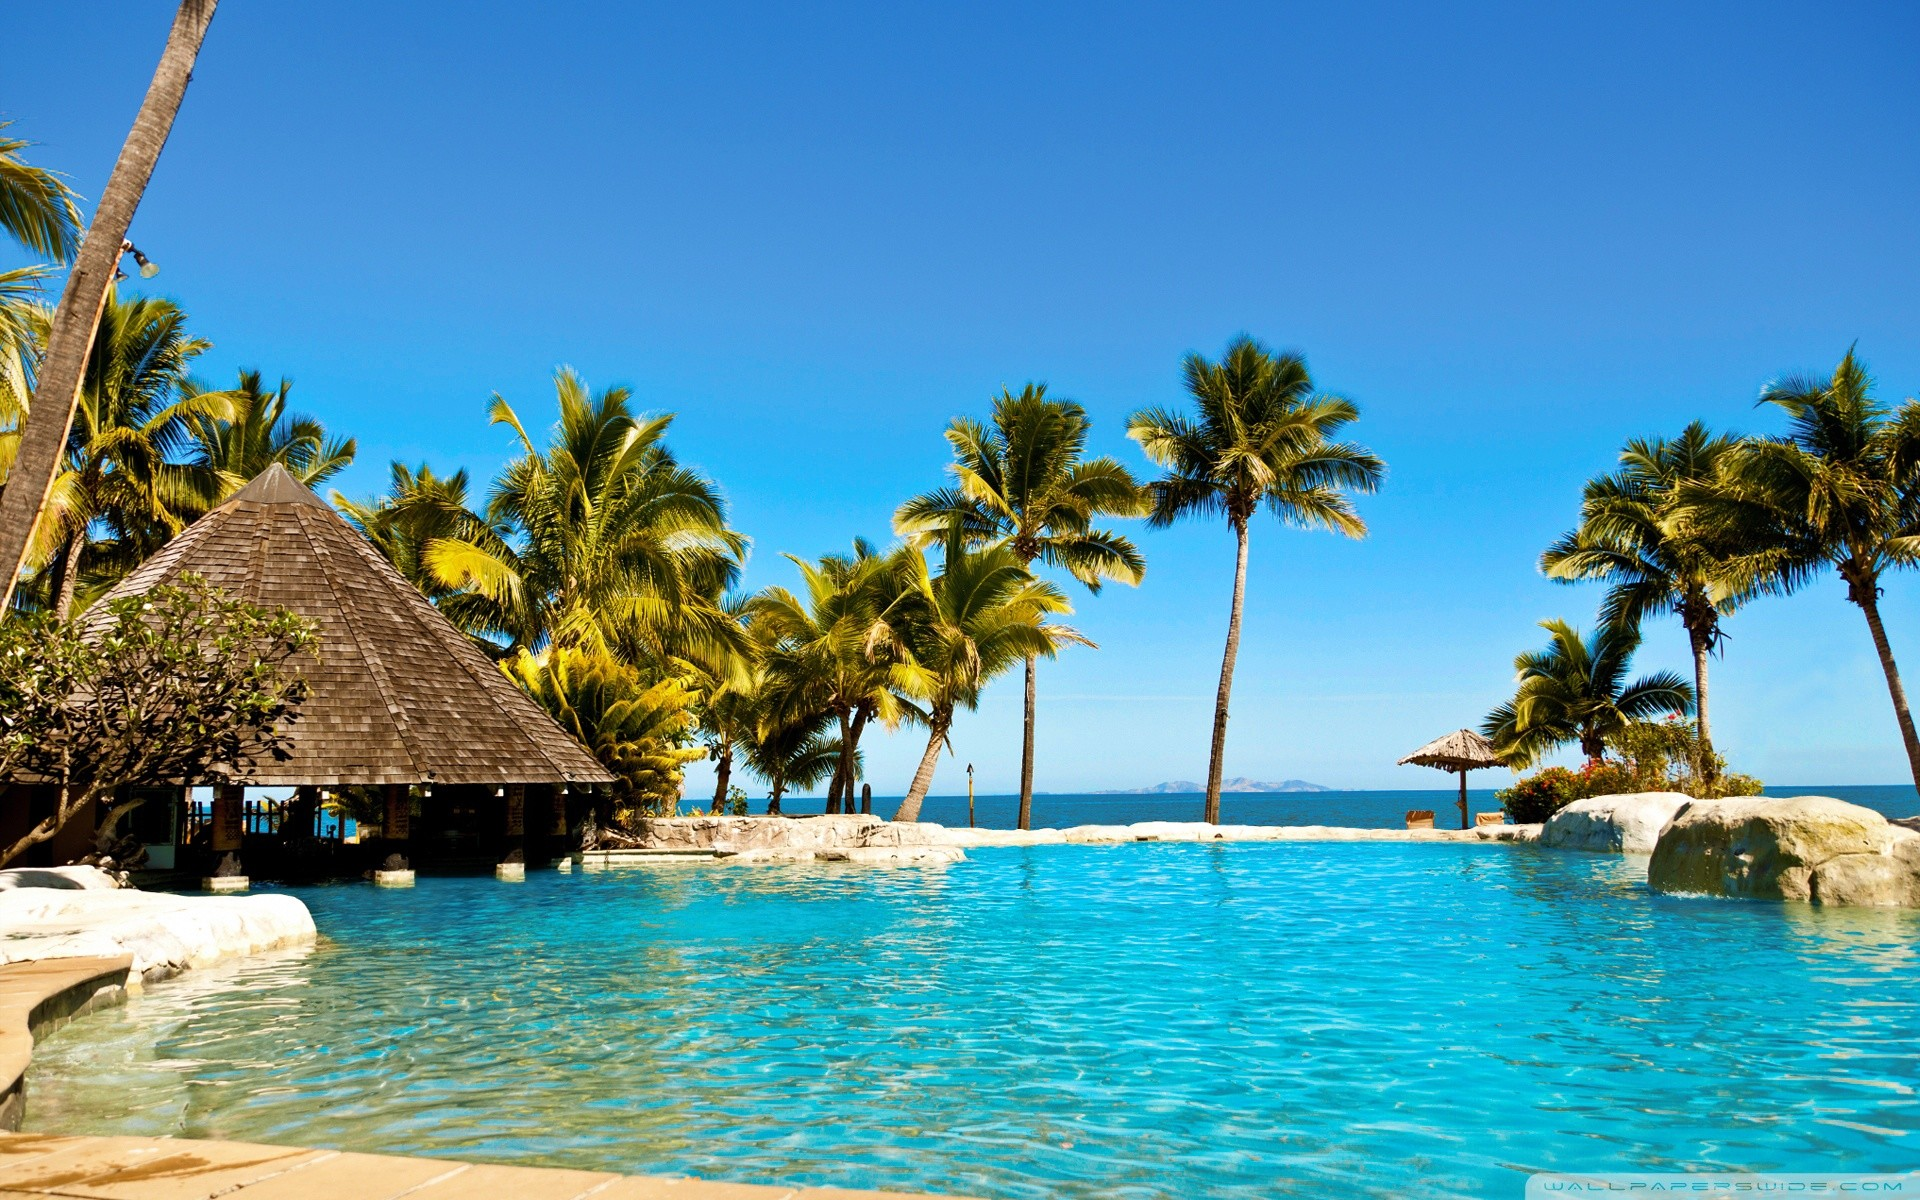 1920x1200 For Your Desktop 41 Top Quality Fiji Wallpapers BsnSCB Gallery